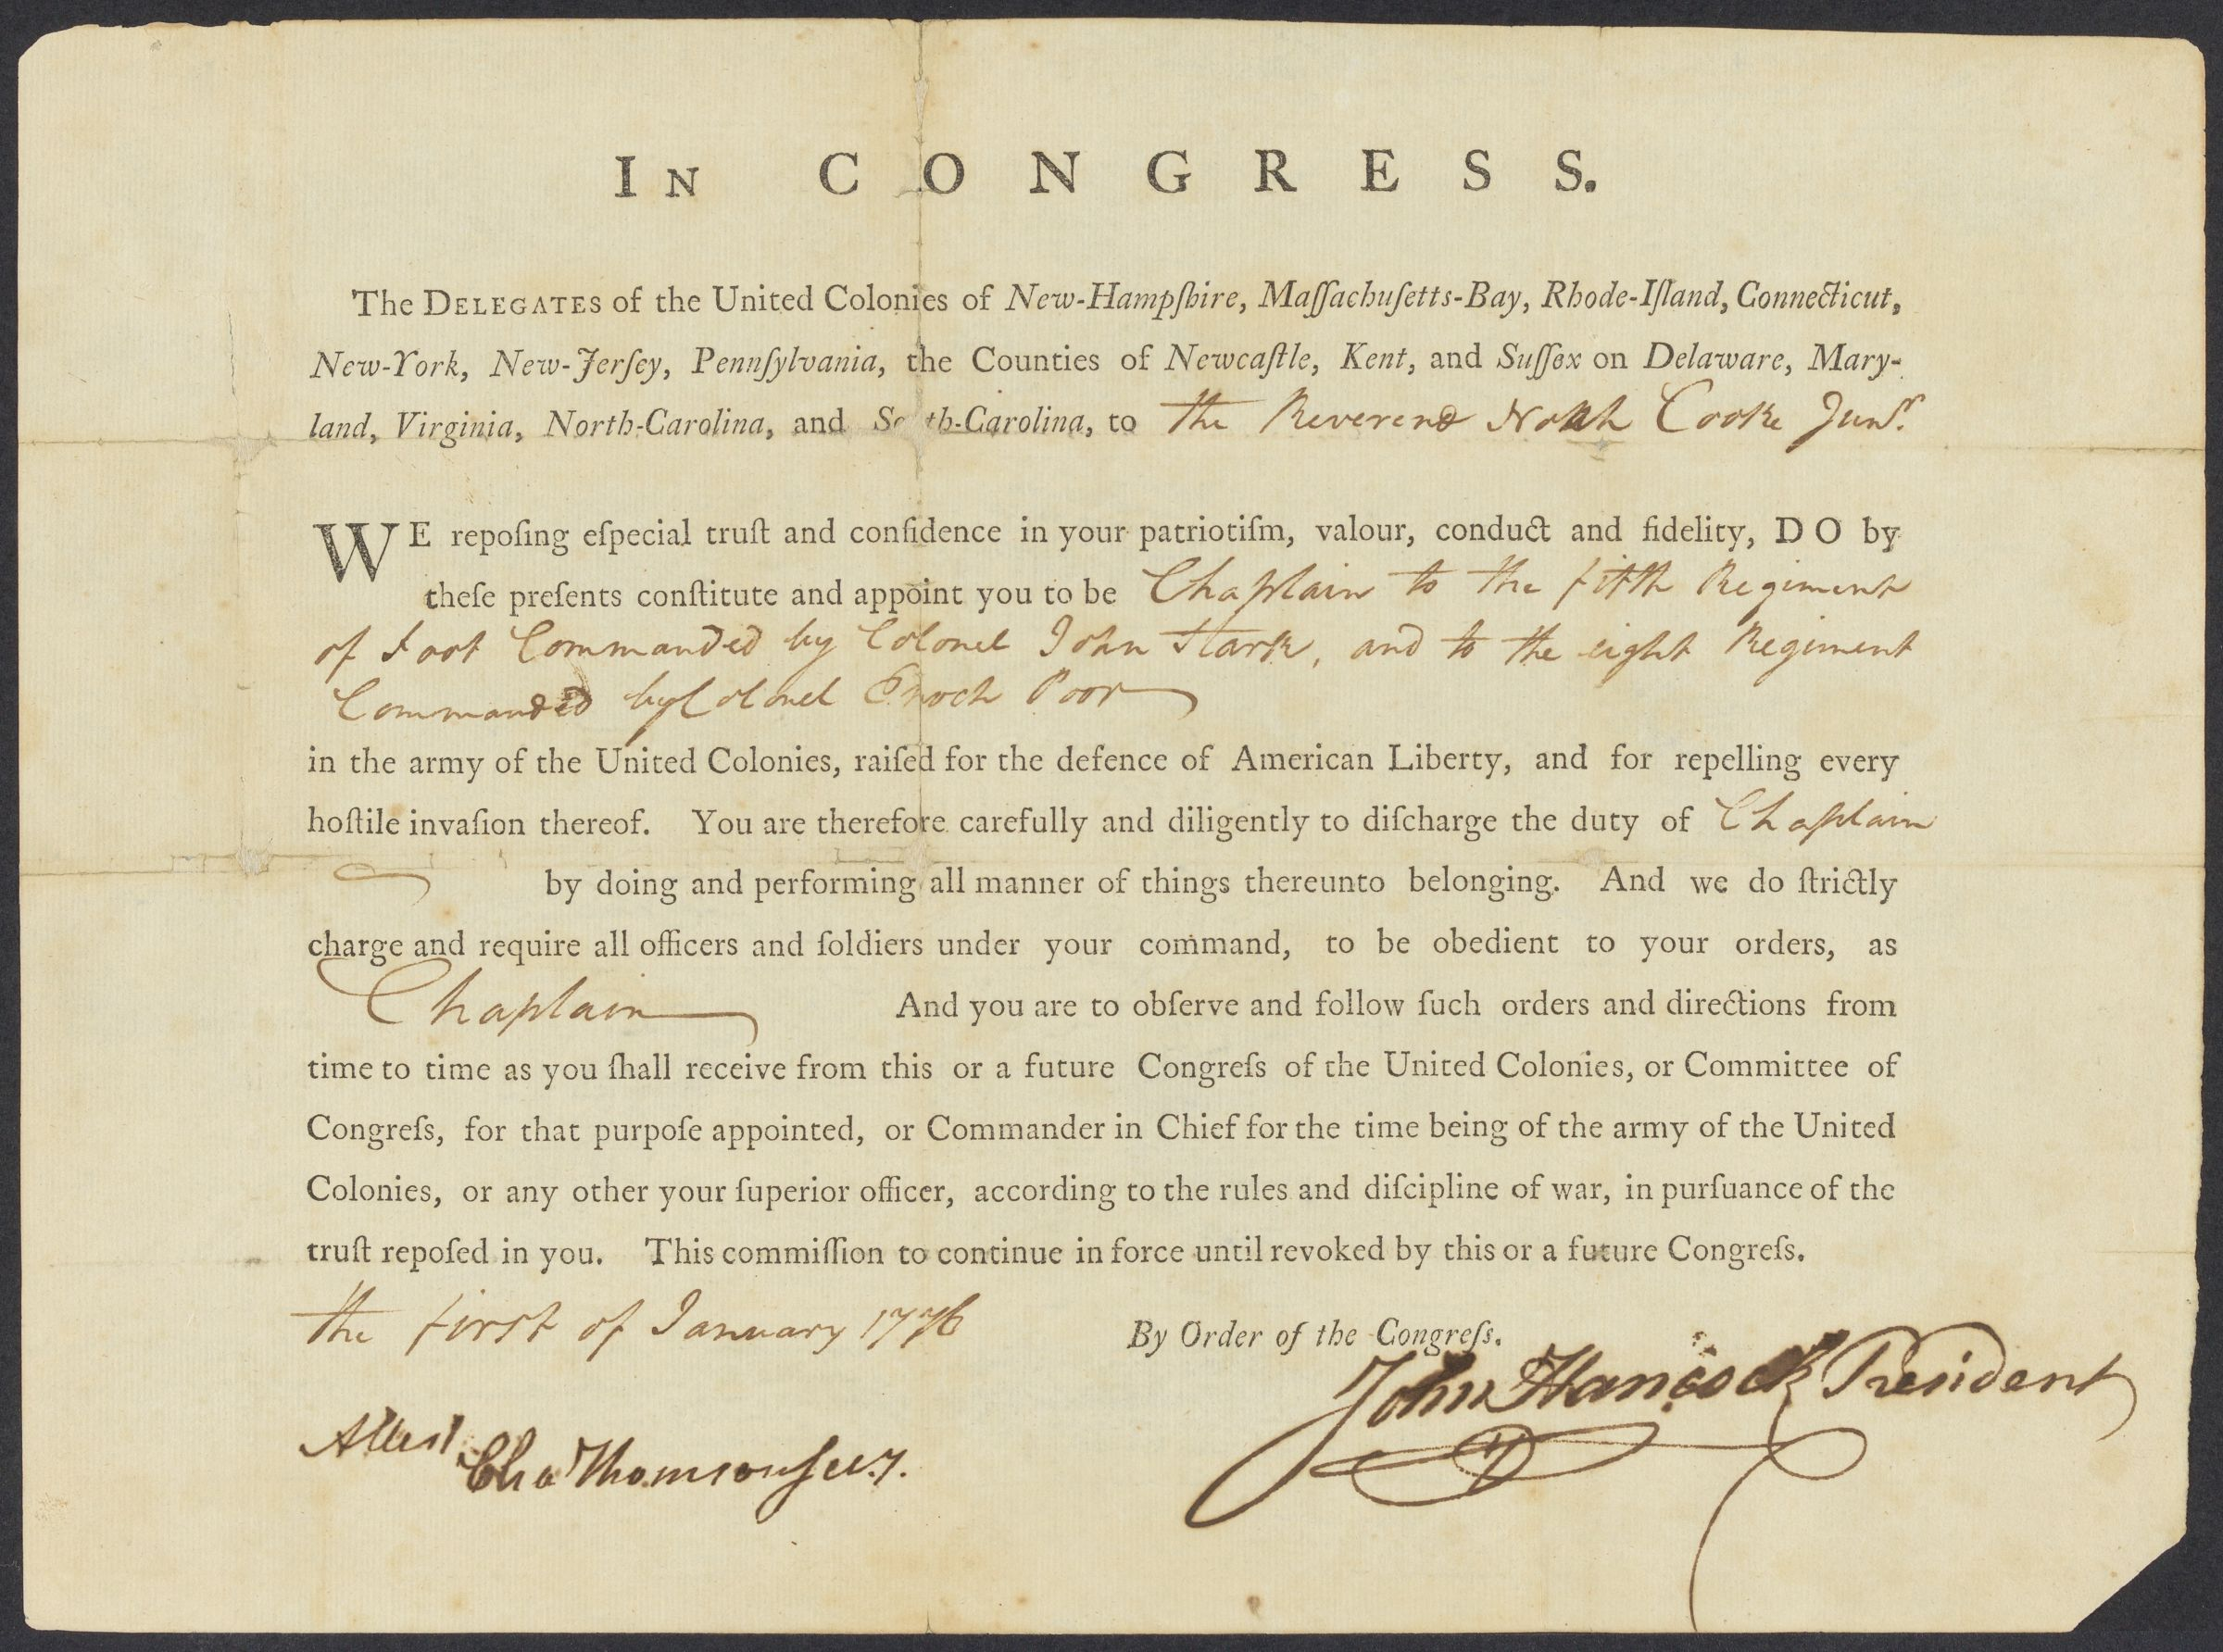 Commission of Noah Cooke, Jr., as chaplain in the Continental Army, signed by John Hancock, 1776 January 1